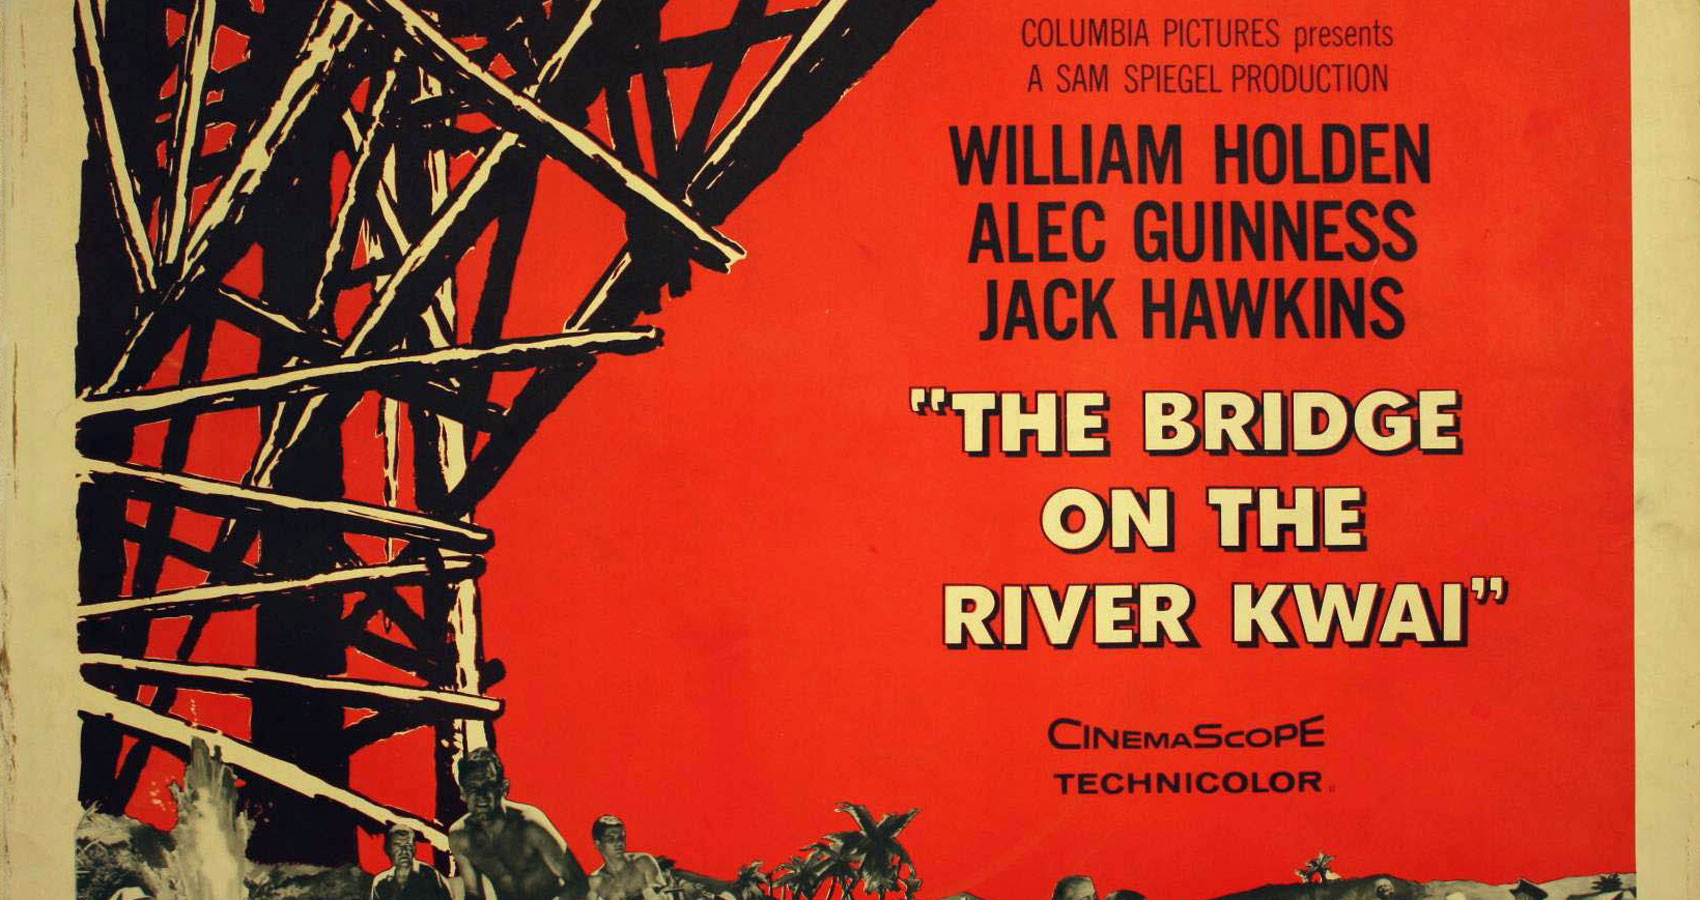 The Bridge on the River Kwai at Spillwords.com